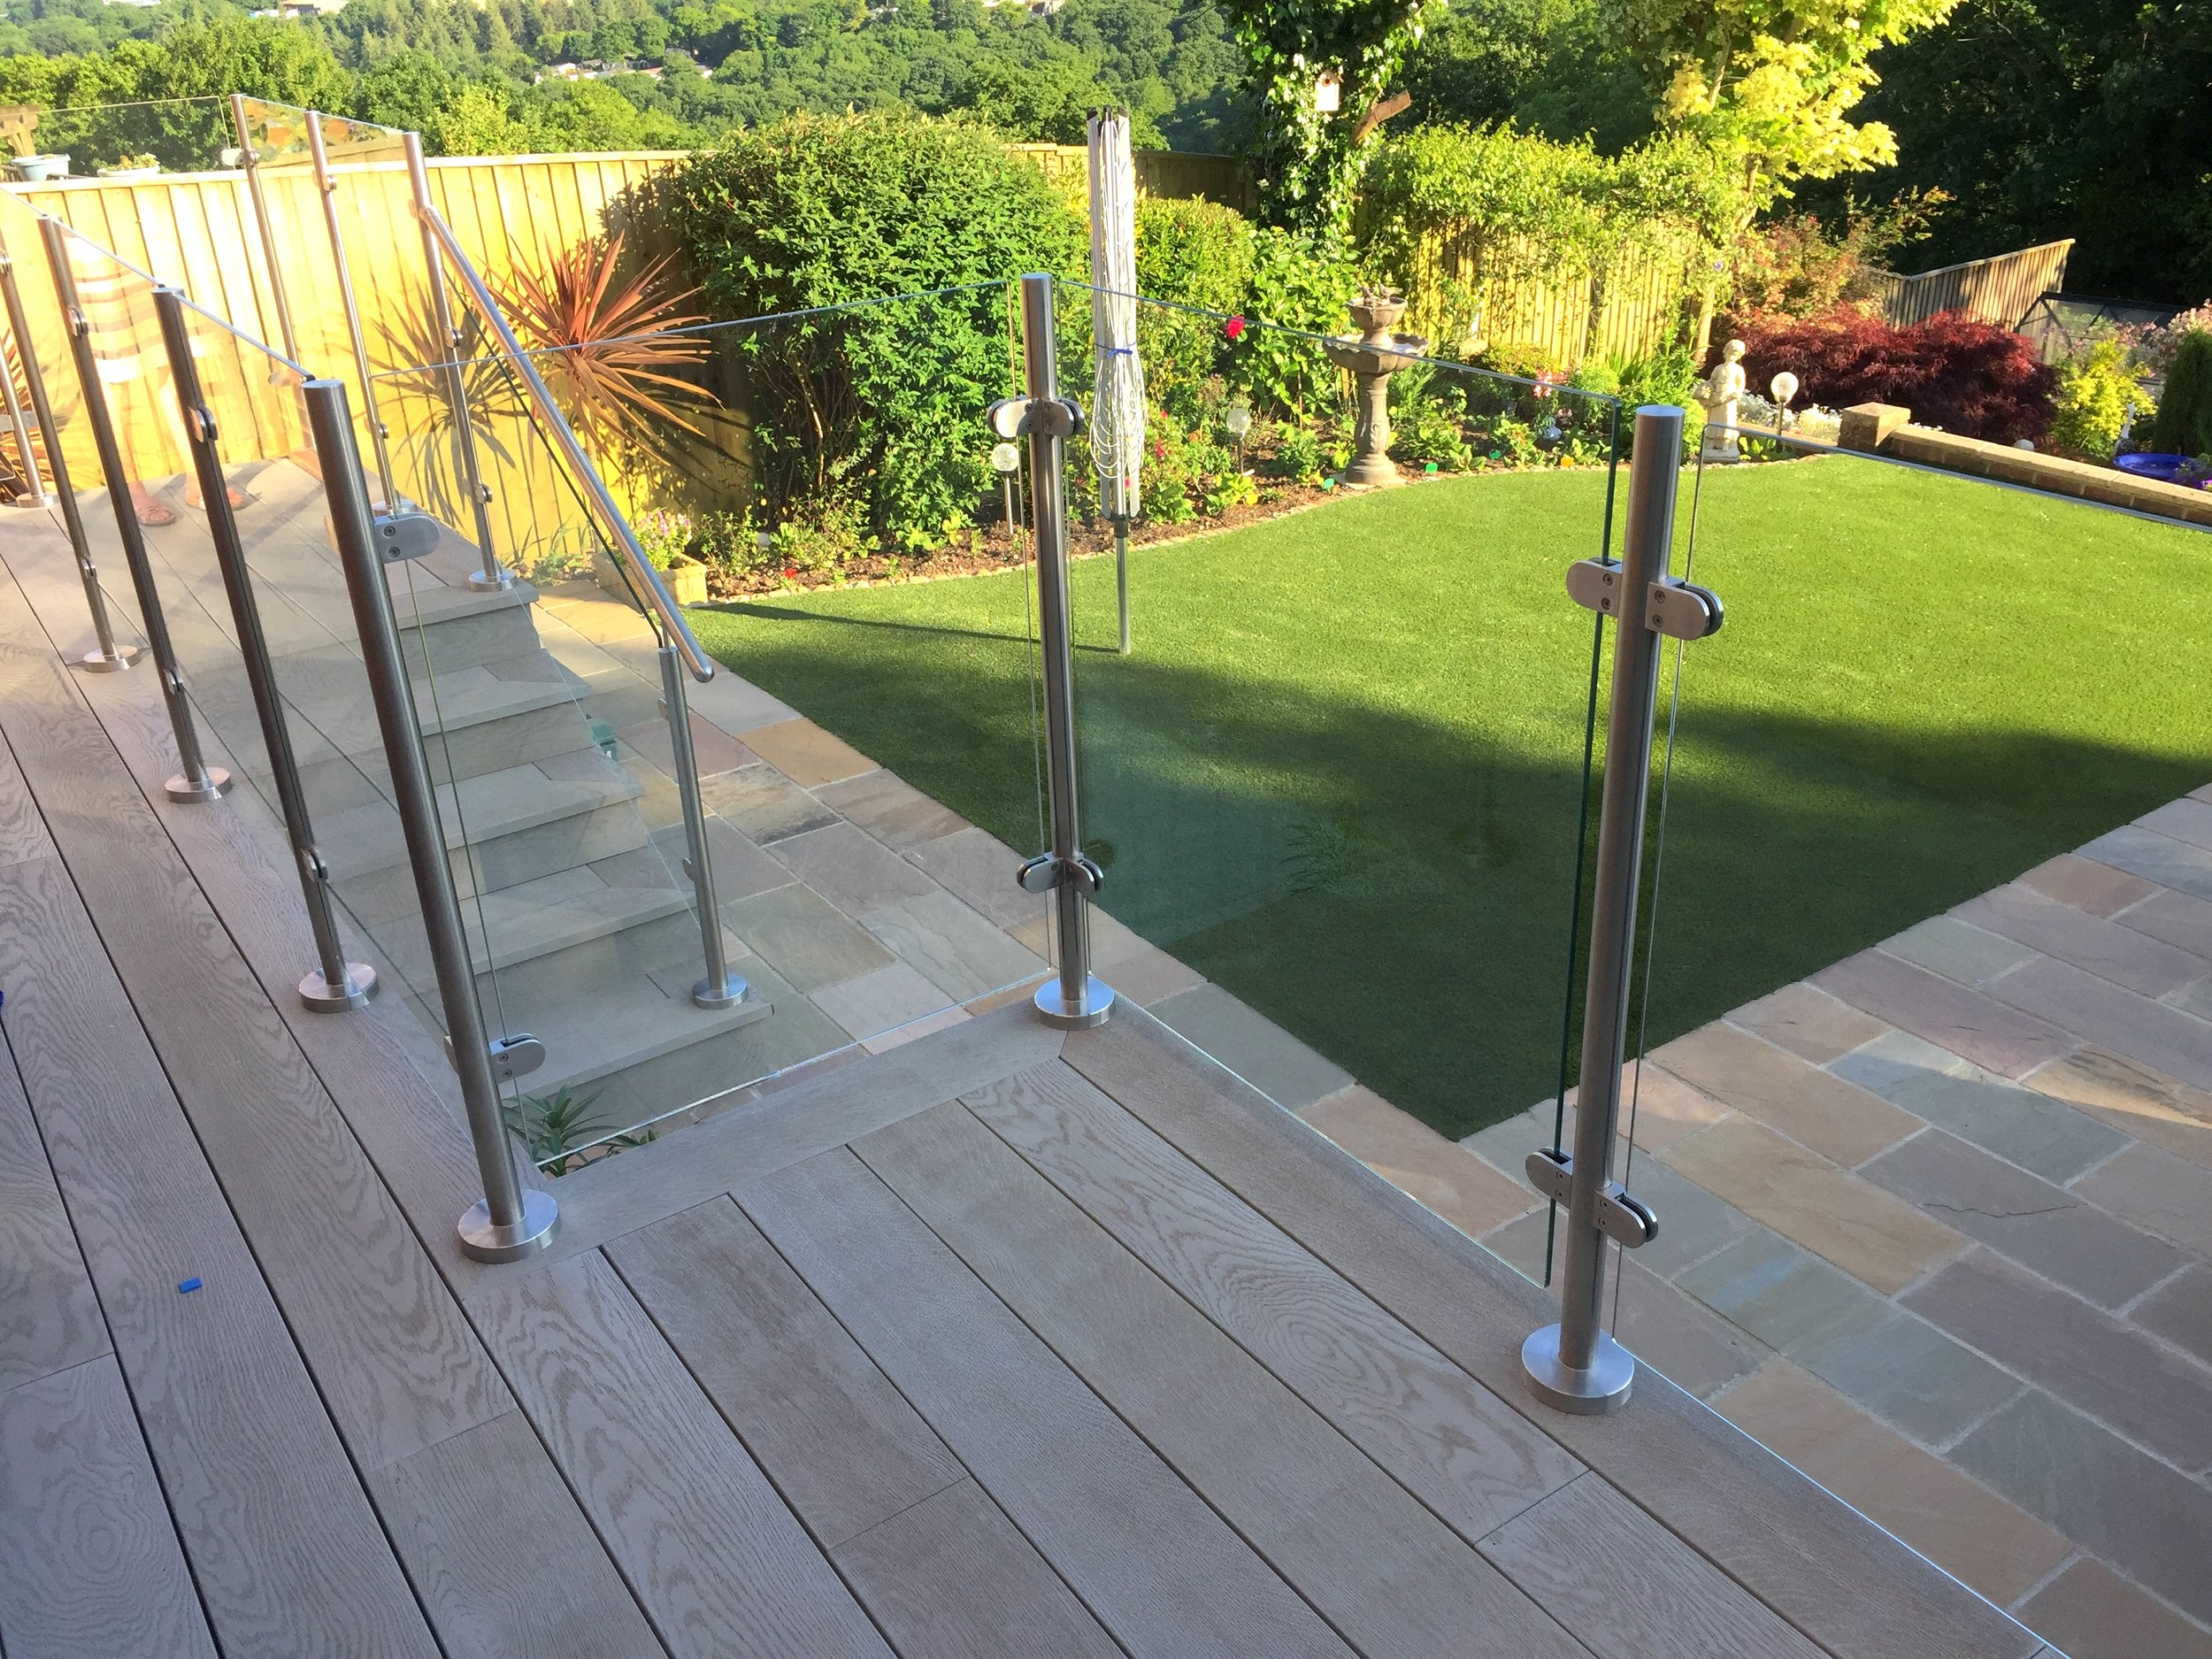 Stainless steel and glass balustrades & balconies